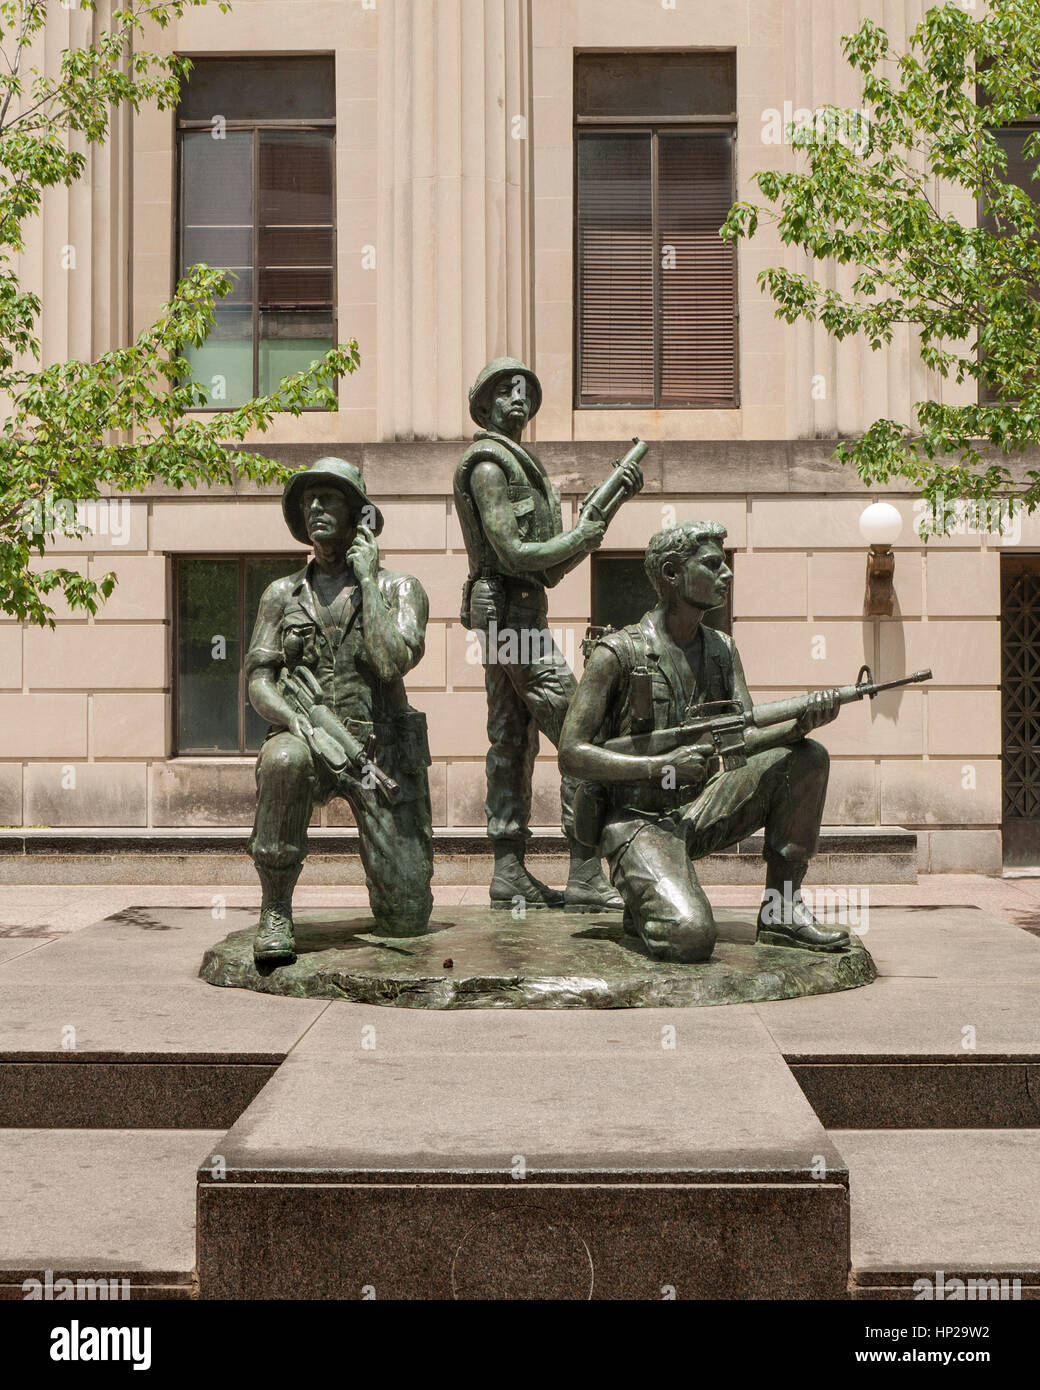 Vietnam War Veterans statue at Legislative Plaza, Nashville, Tennessee - Stock Image